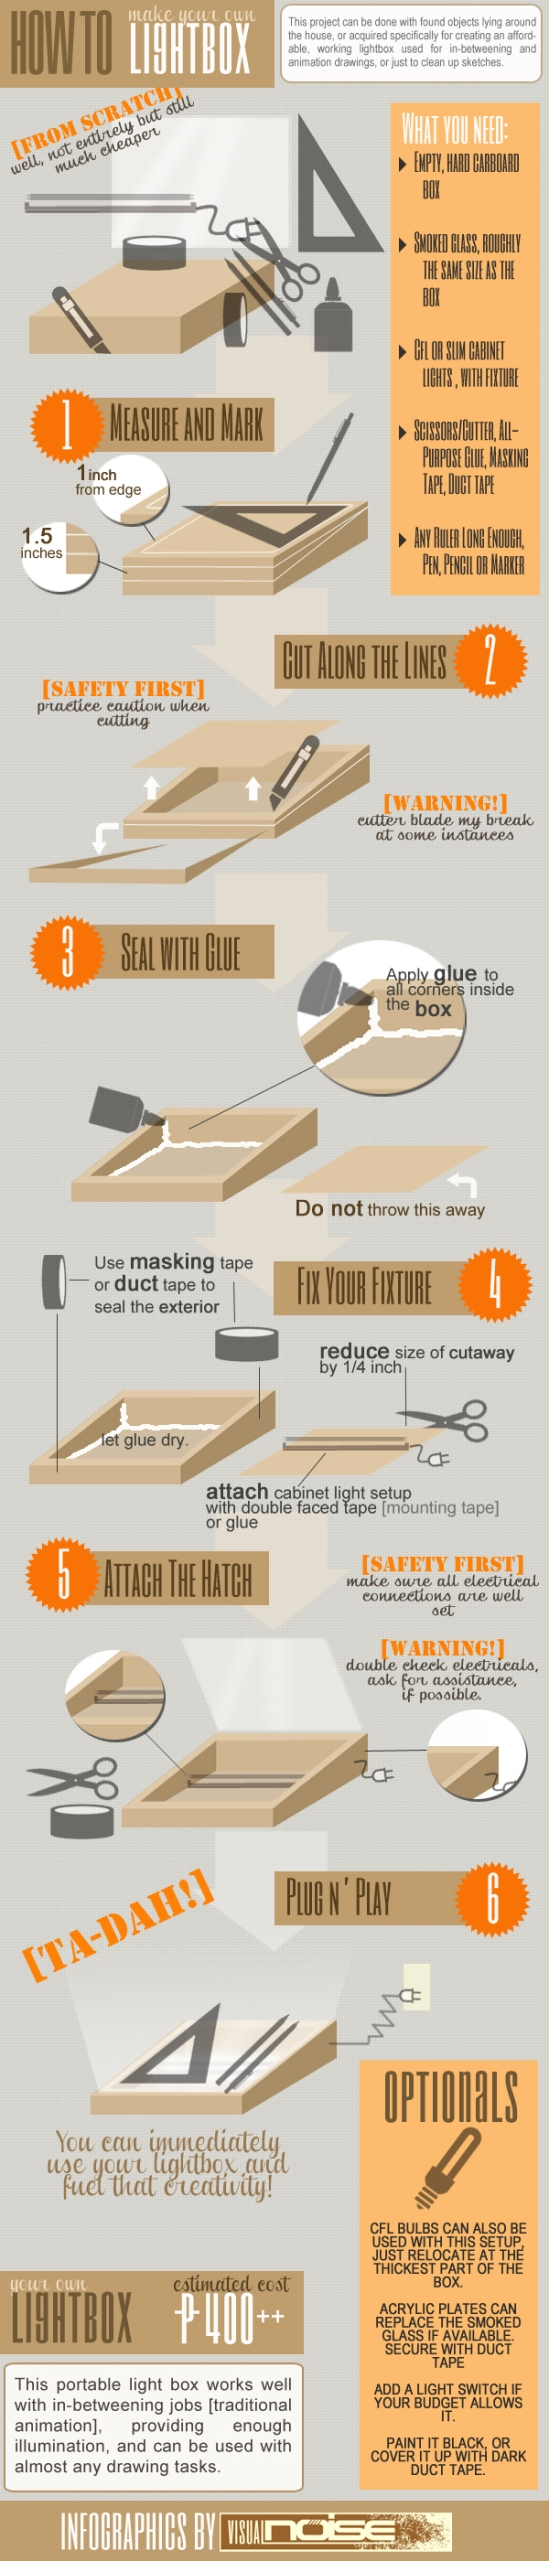 How To: Make Your Own Lightbox [infographic]